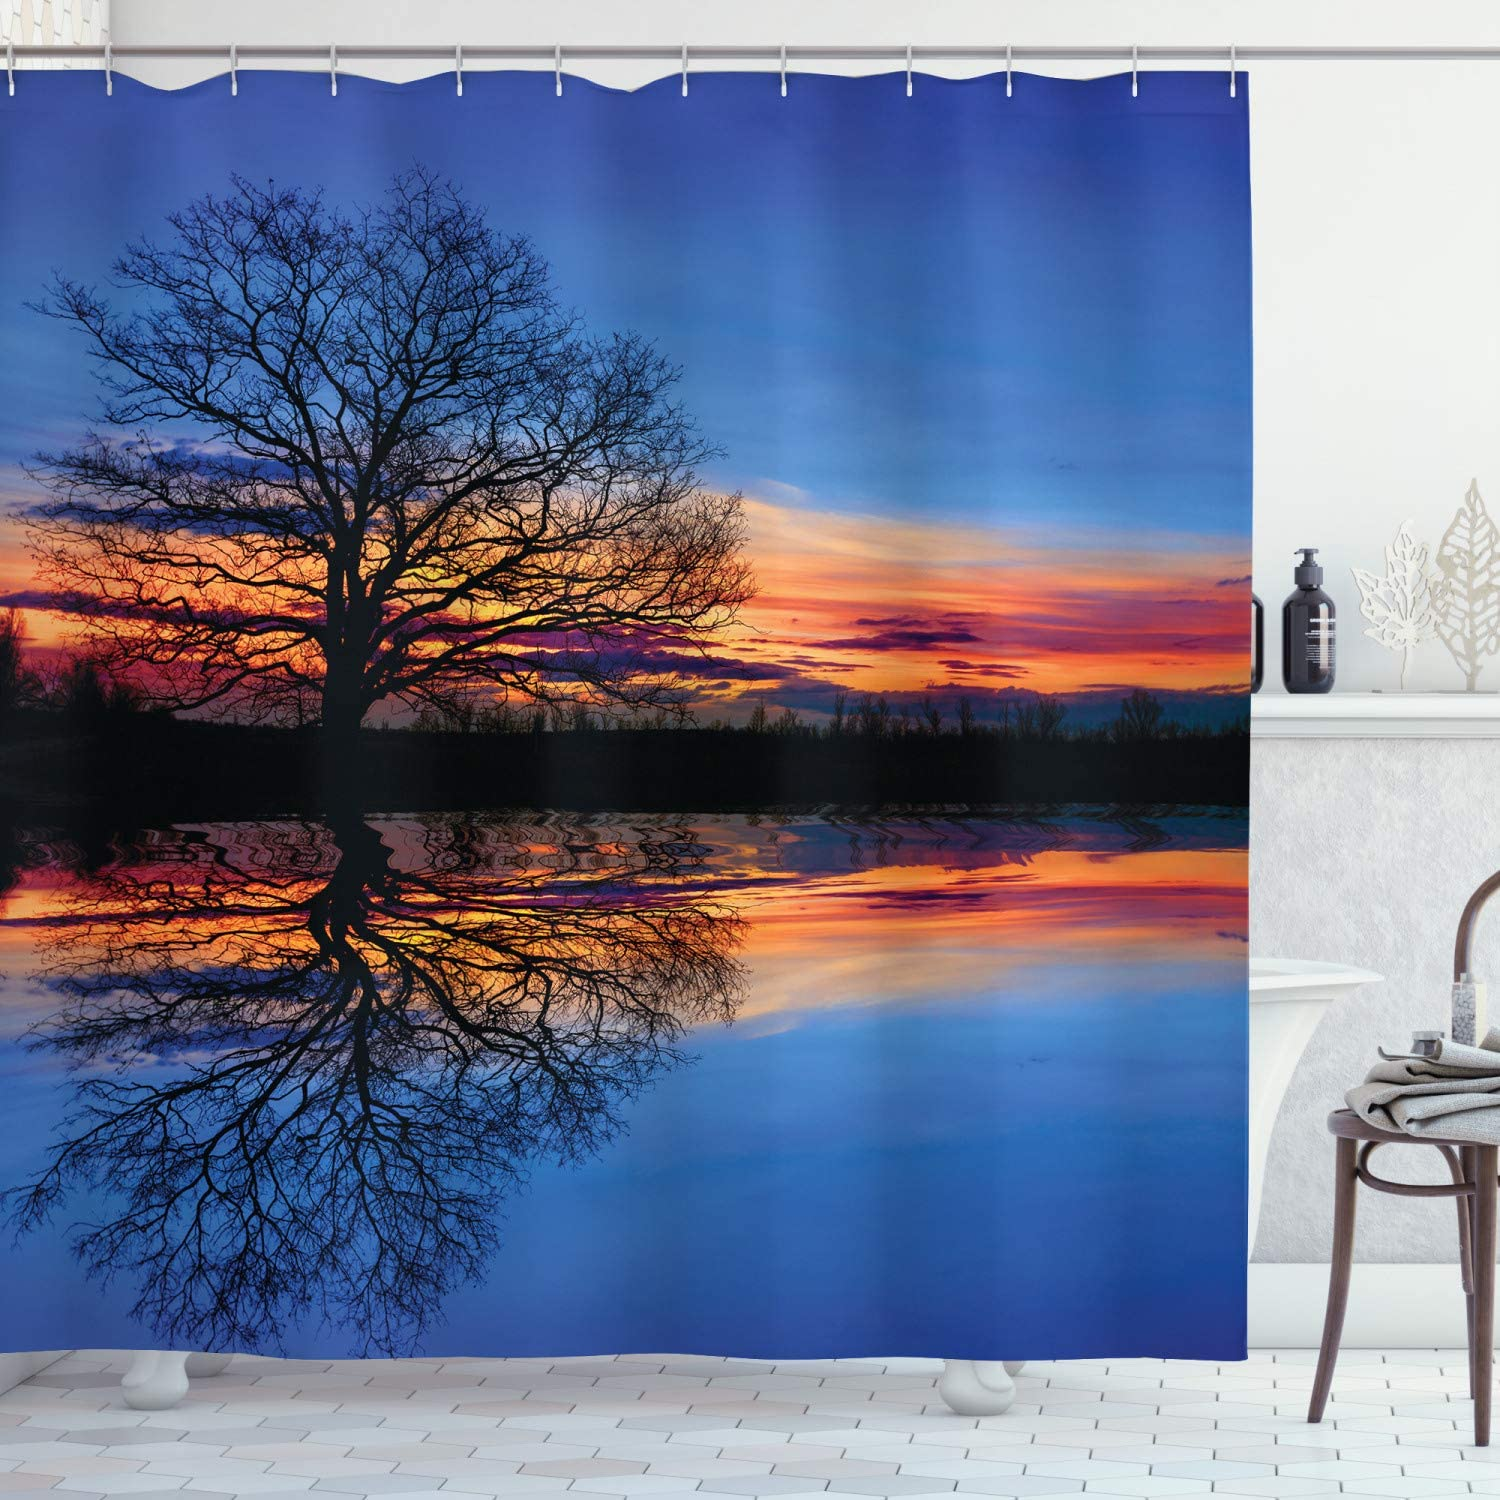 Ambesonne Panorama Shower Curtain, Tree Against Sunset View at Night with Sky Reflection Over The Lake Print, Cloth Fabric Bathroom Decor Set with Hooks, 70